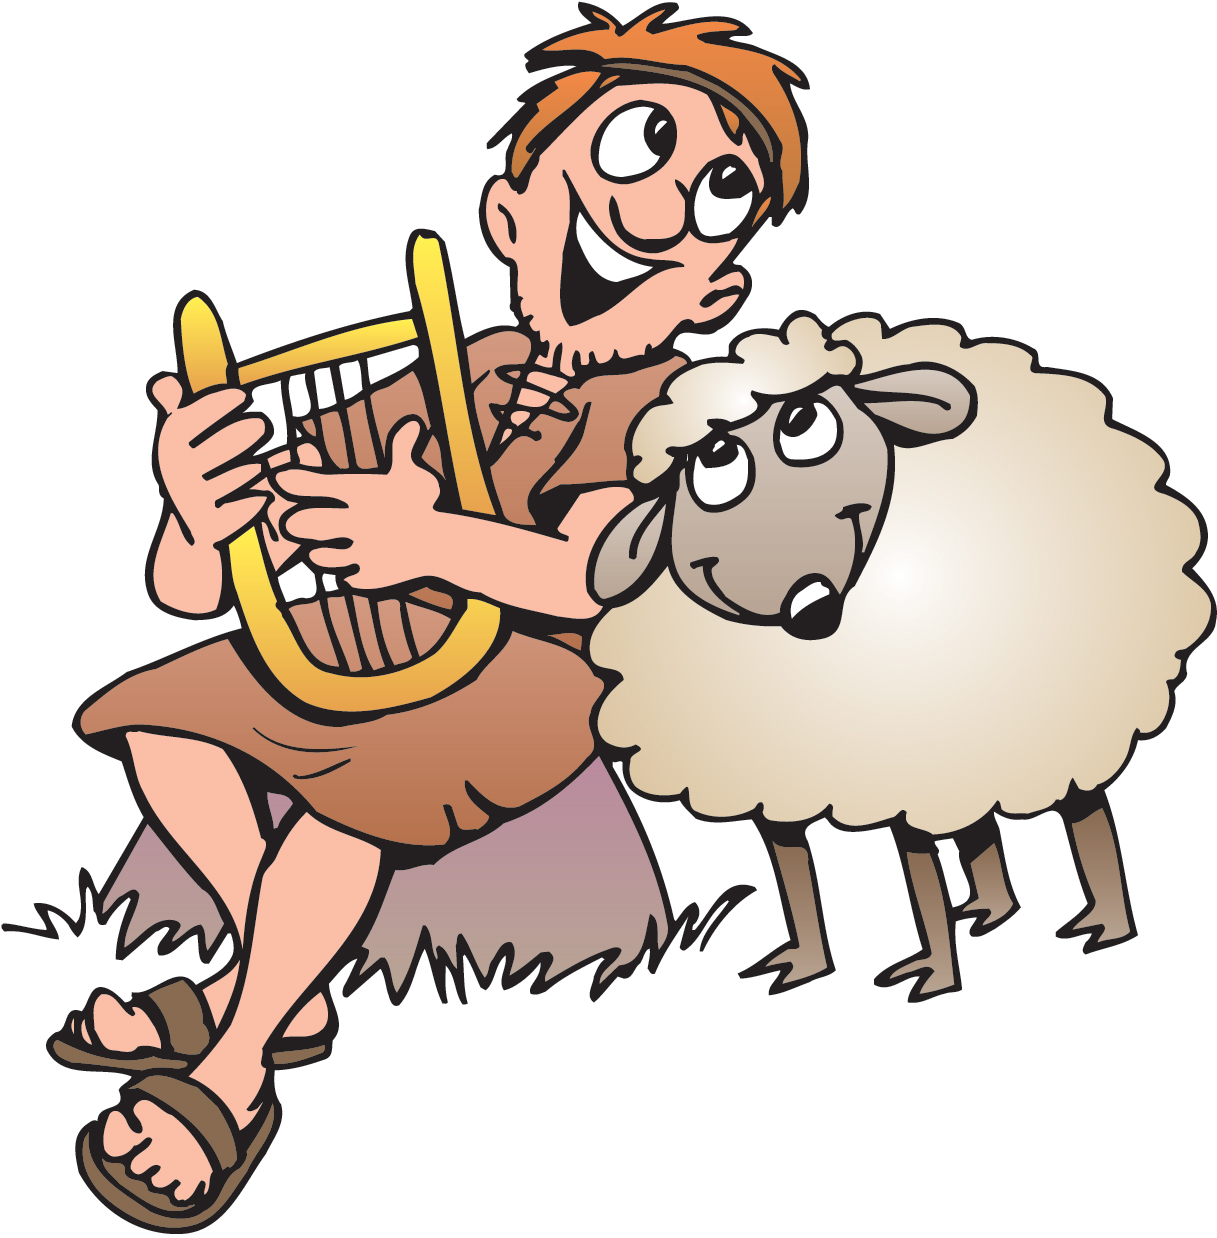 Bible clipart psalm. February daily reading with